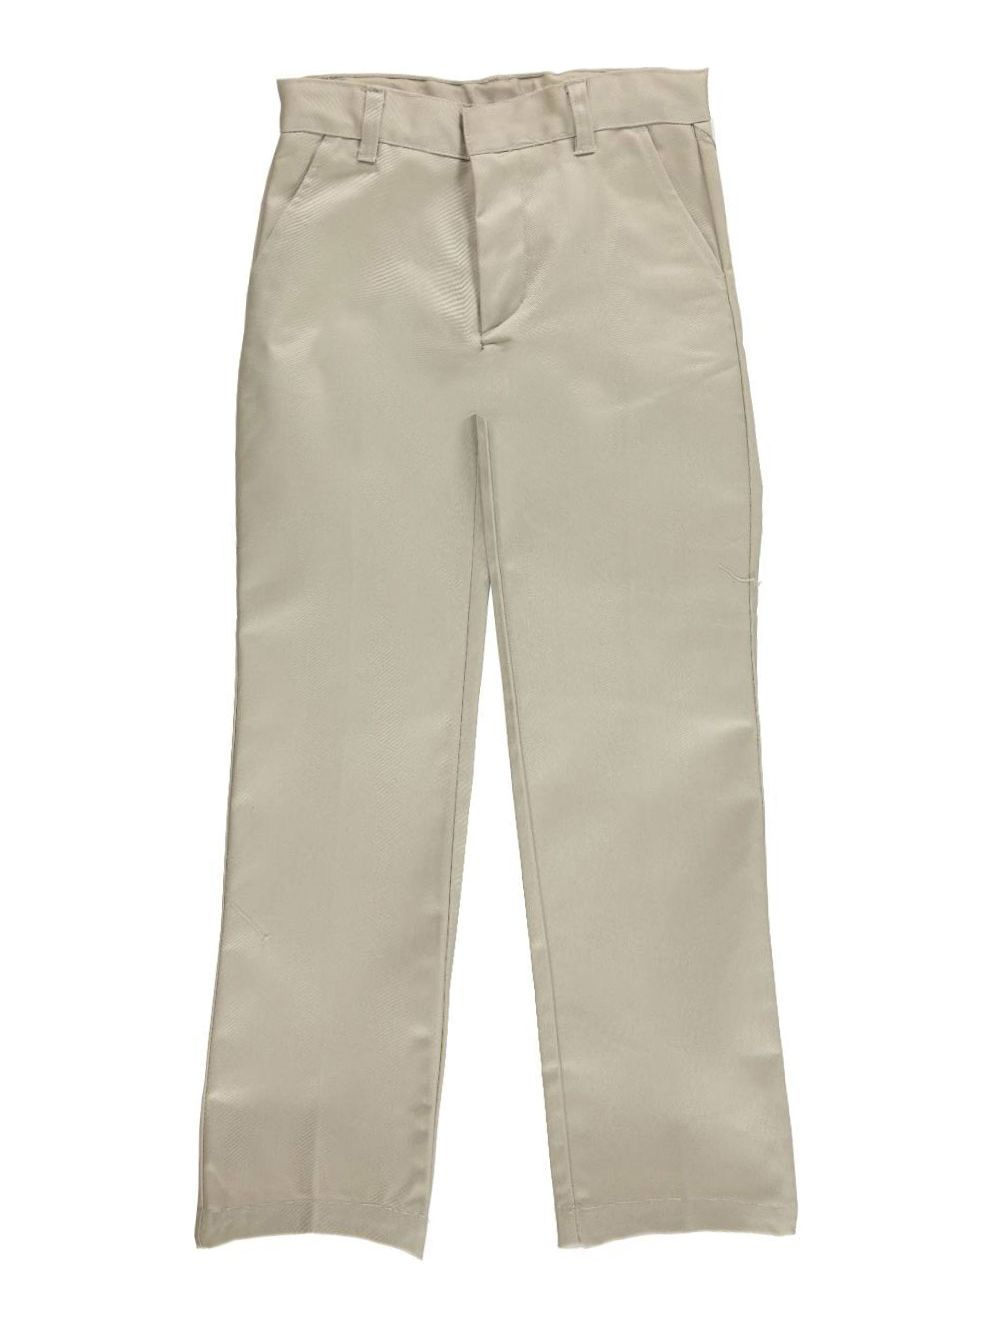 6a07446861985 French Toast Big Girls' Stretch Twill Uniform Pants - khaki, 10 ...